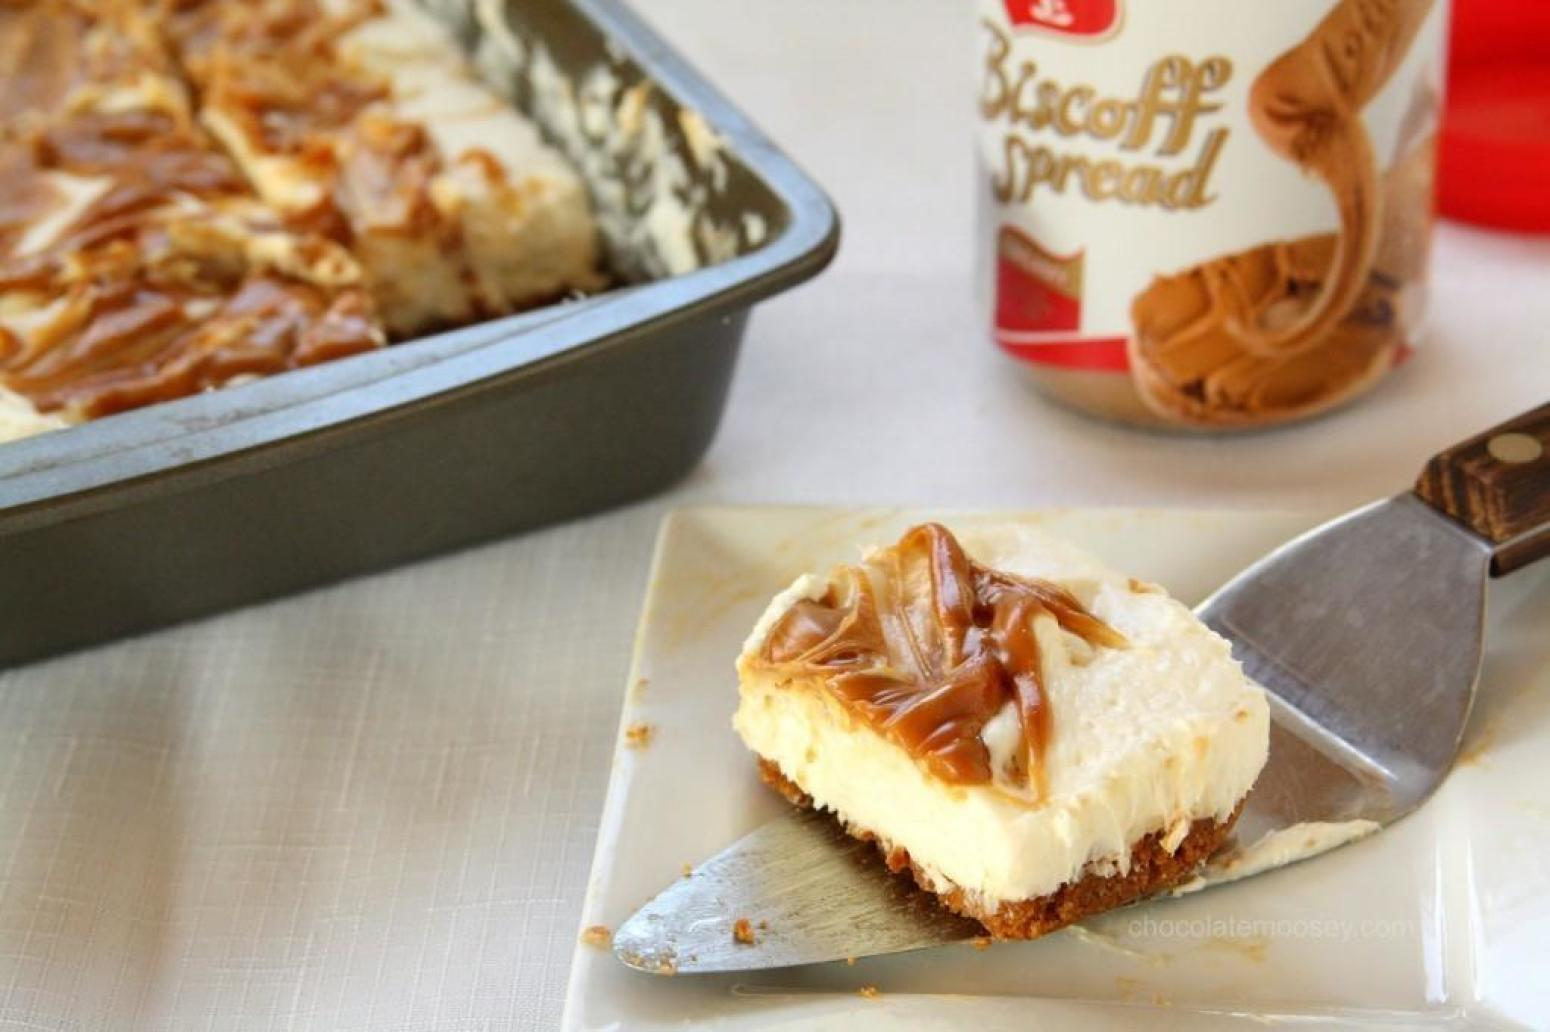 No Bake Biscoff Swirl Cheesecake Recipe | Just A Pinch Recipes